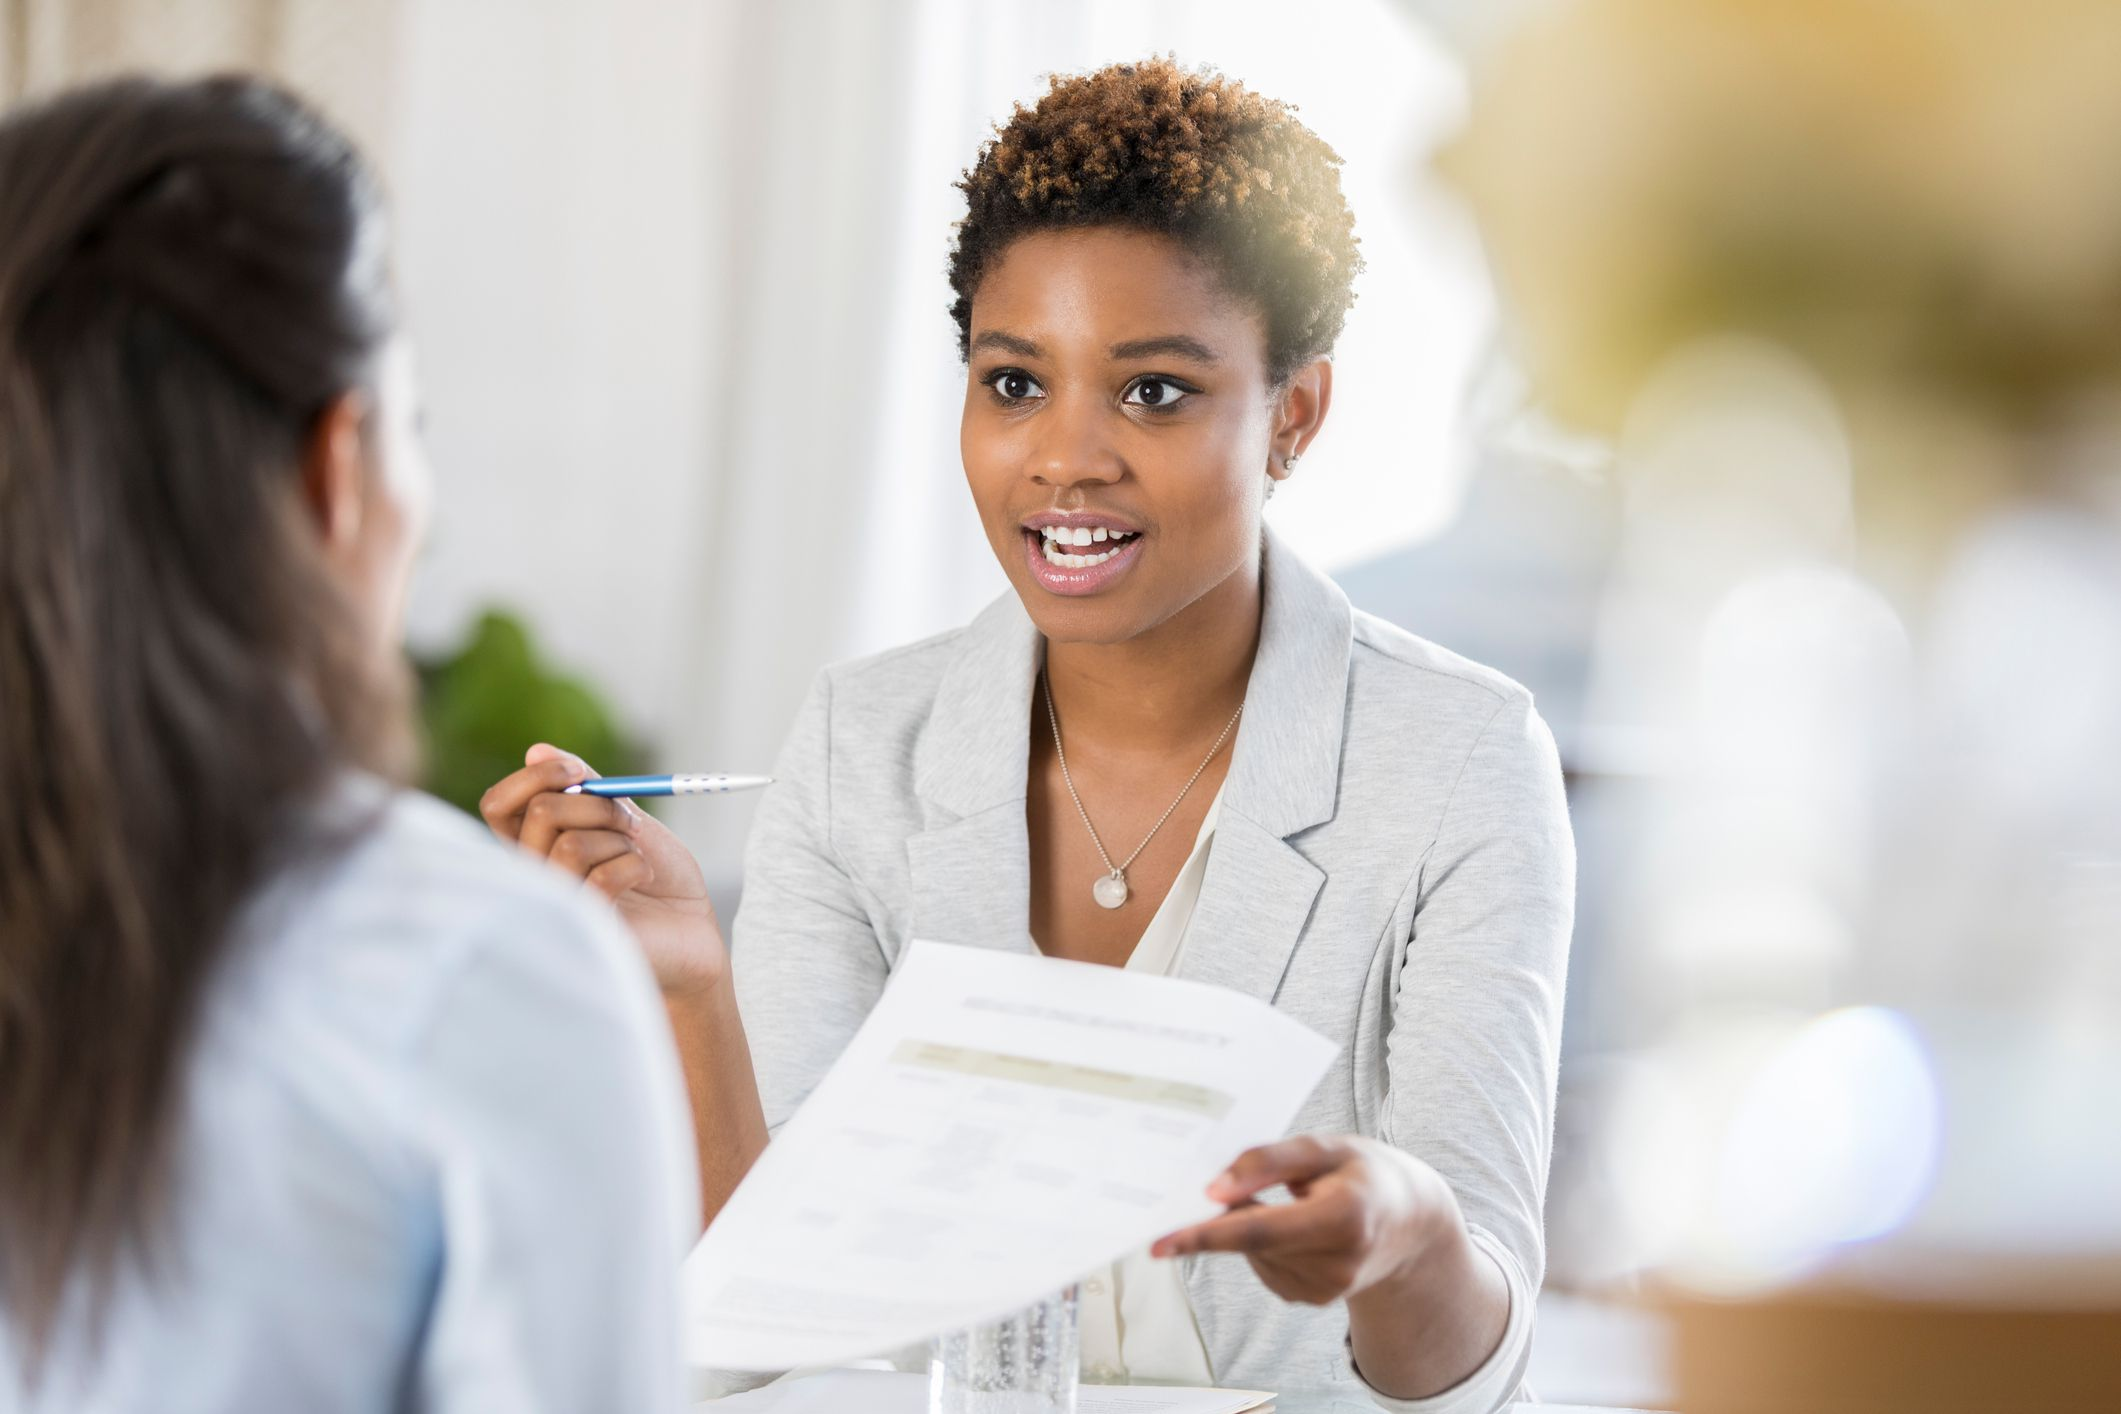 How to Find and Choose a Career Counselor or Coach